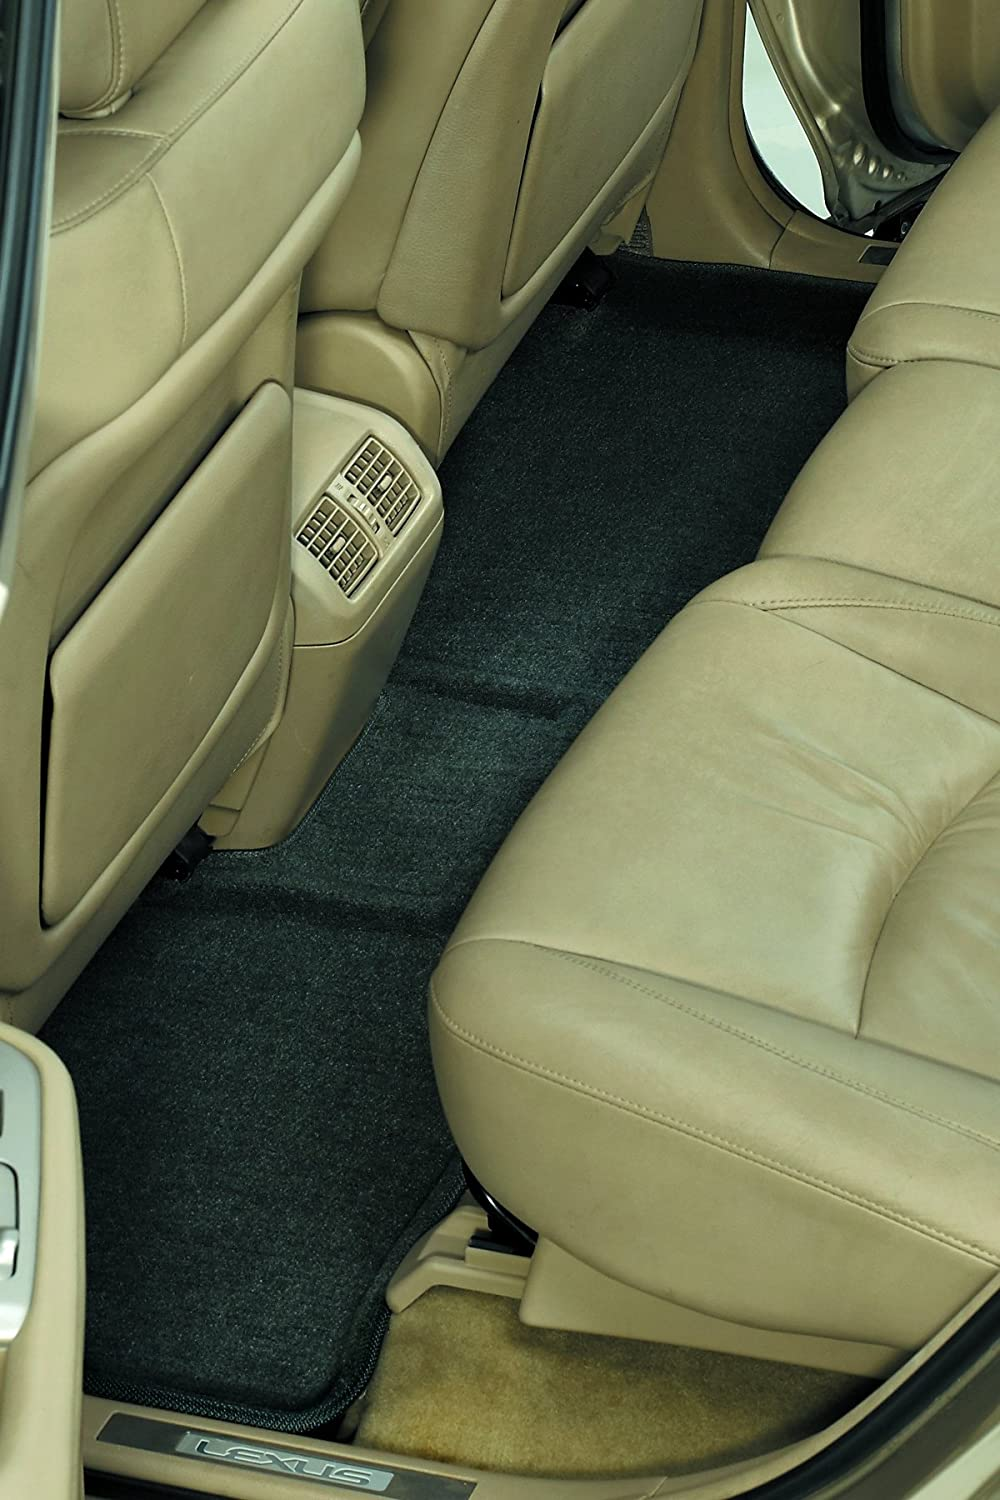 Classic Carpet 3D MAXpider Third Row Custom Fit All-Weather Floor Mat for Select Buick Enclave //Chevrolet Traverse //GMC Acadia Models Gray